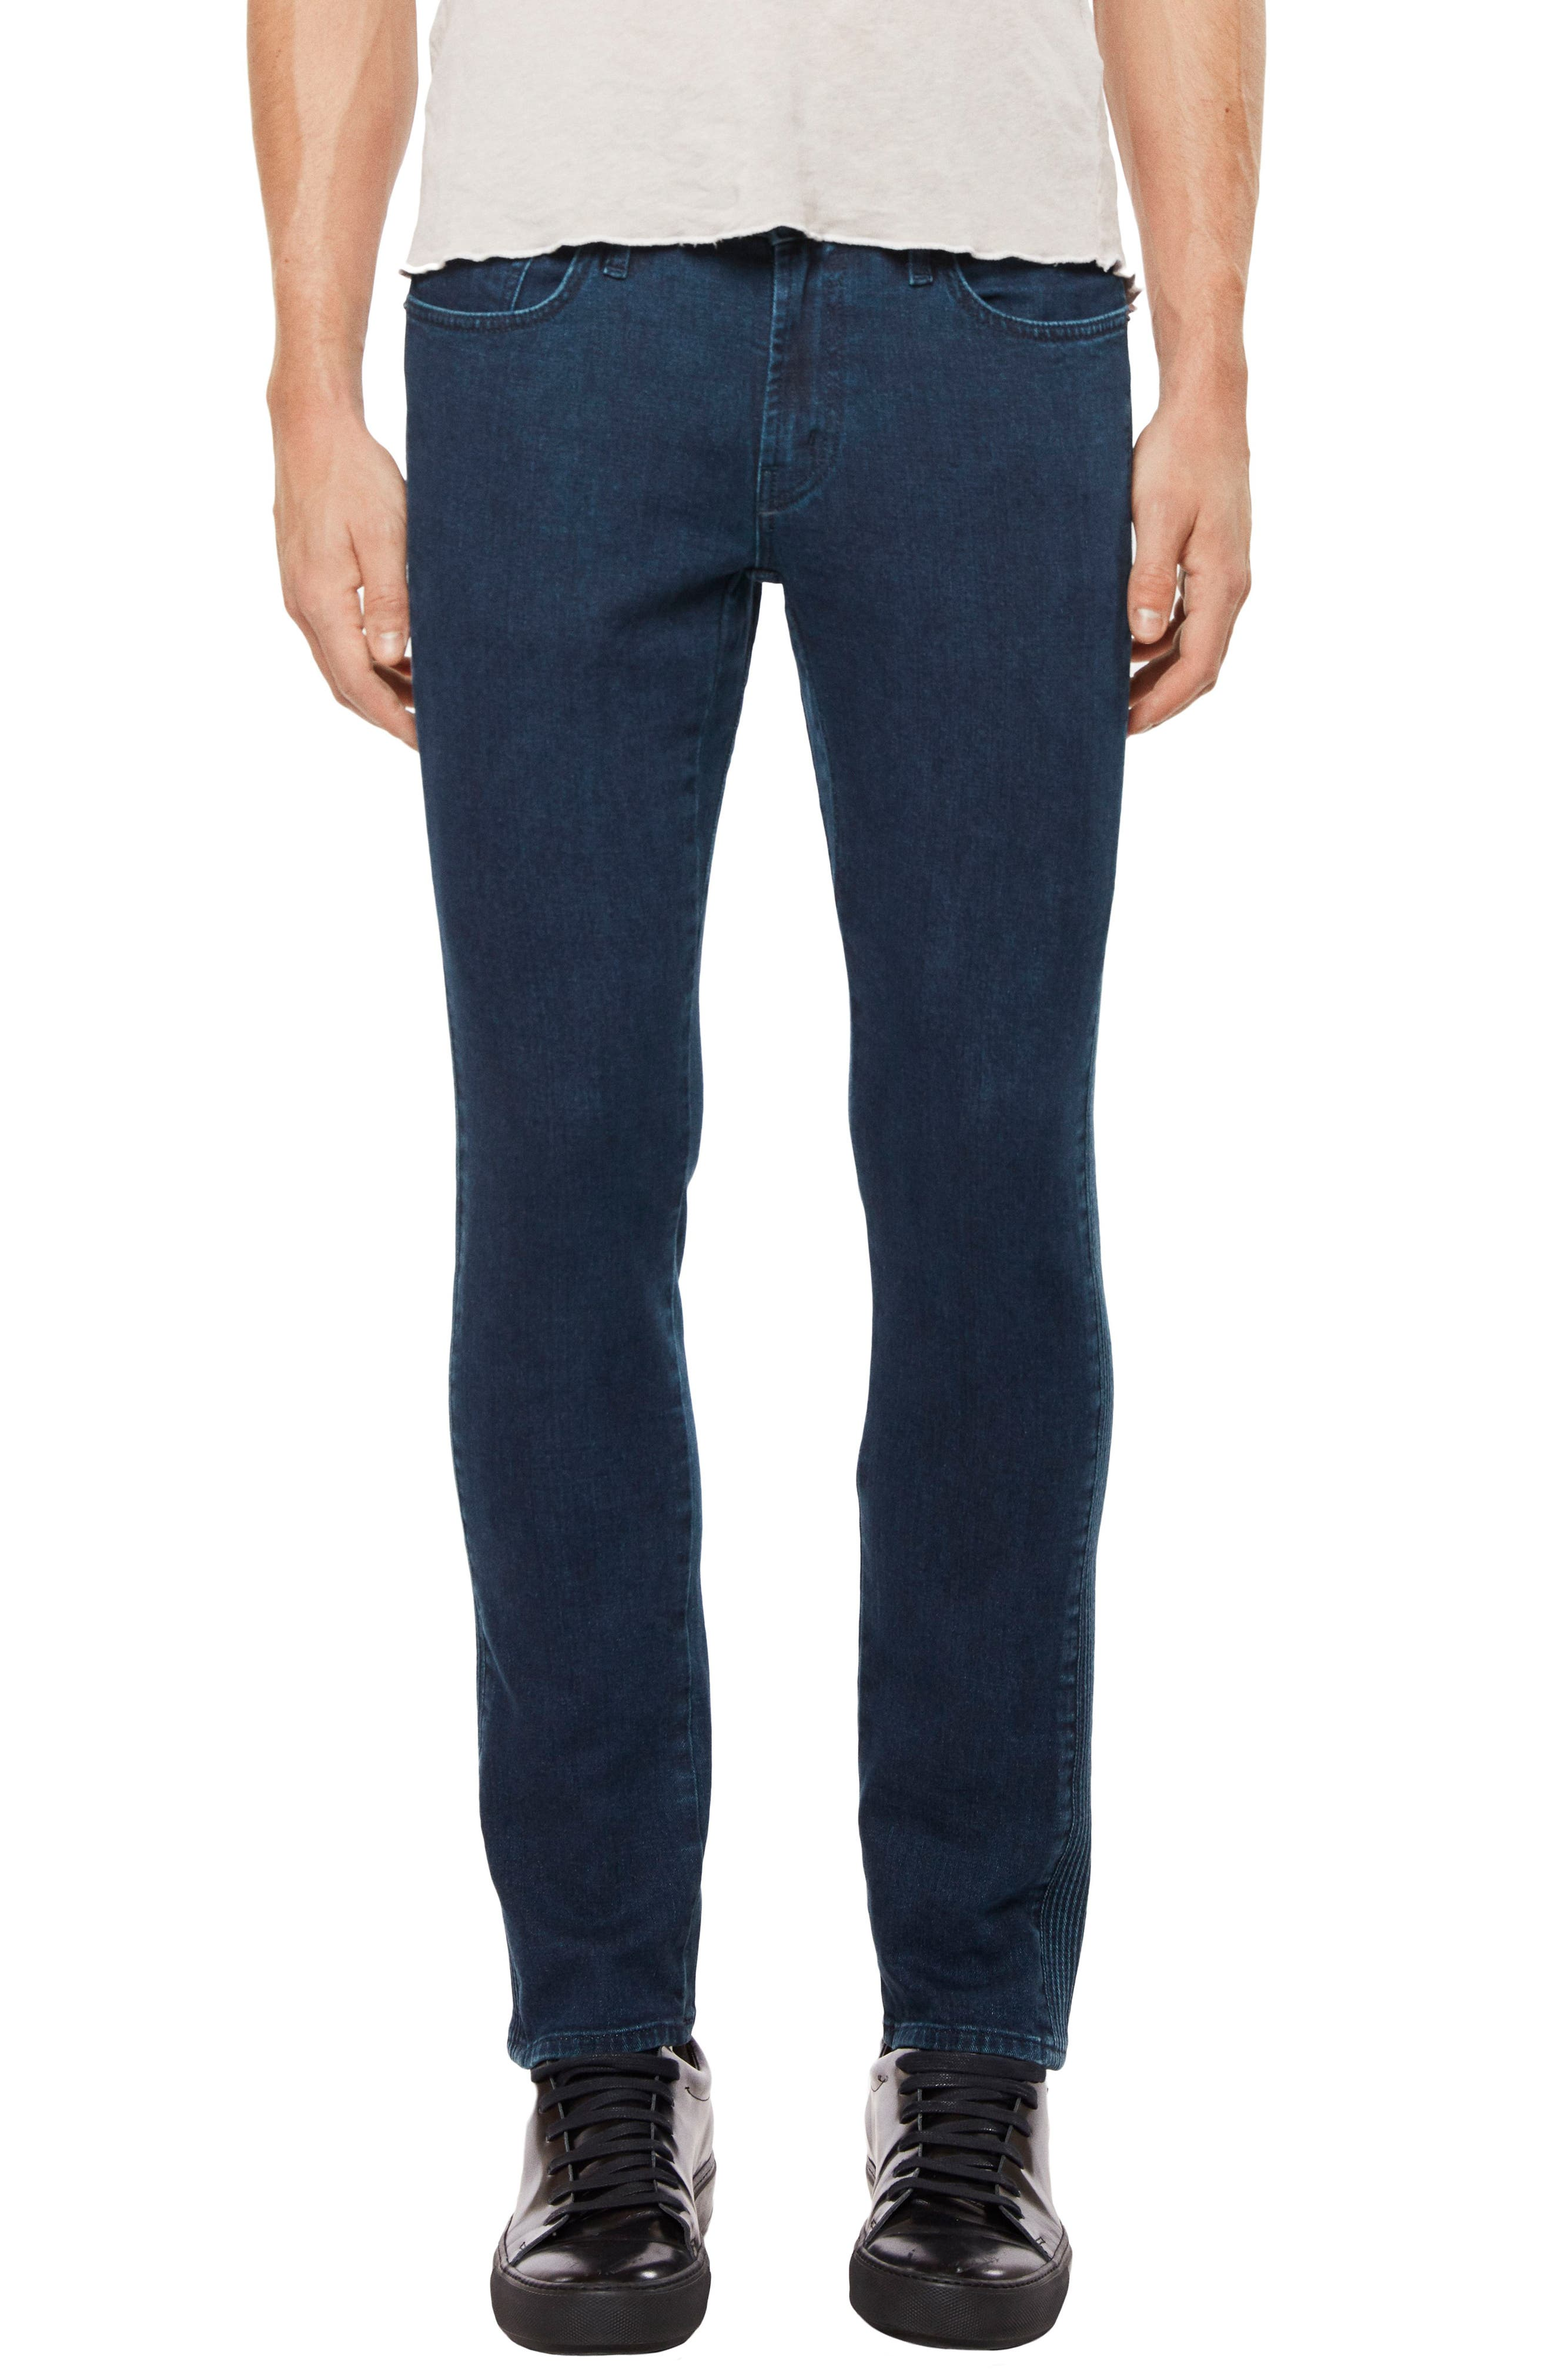 Moto Skinny Fit Jeans,                         Main,                         color, Afantic